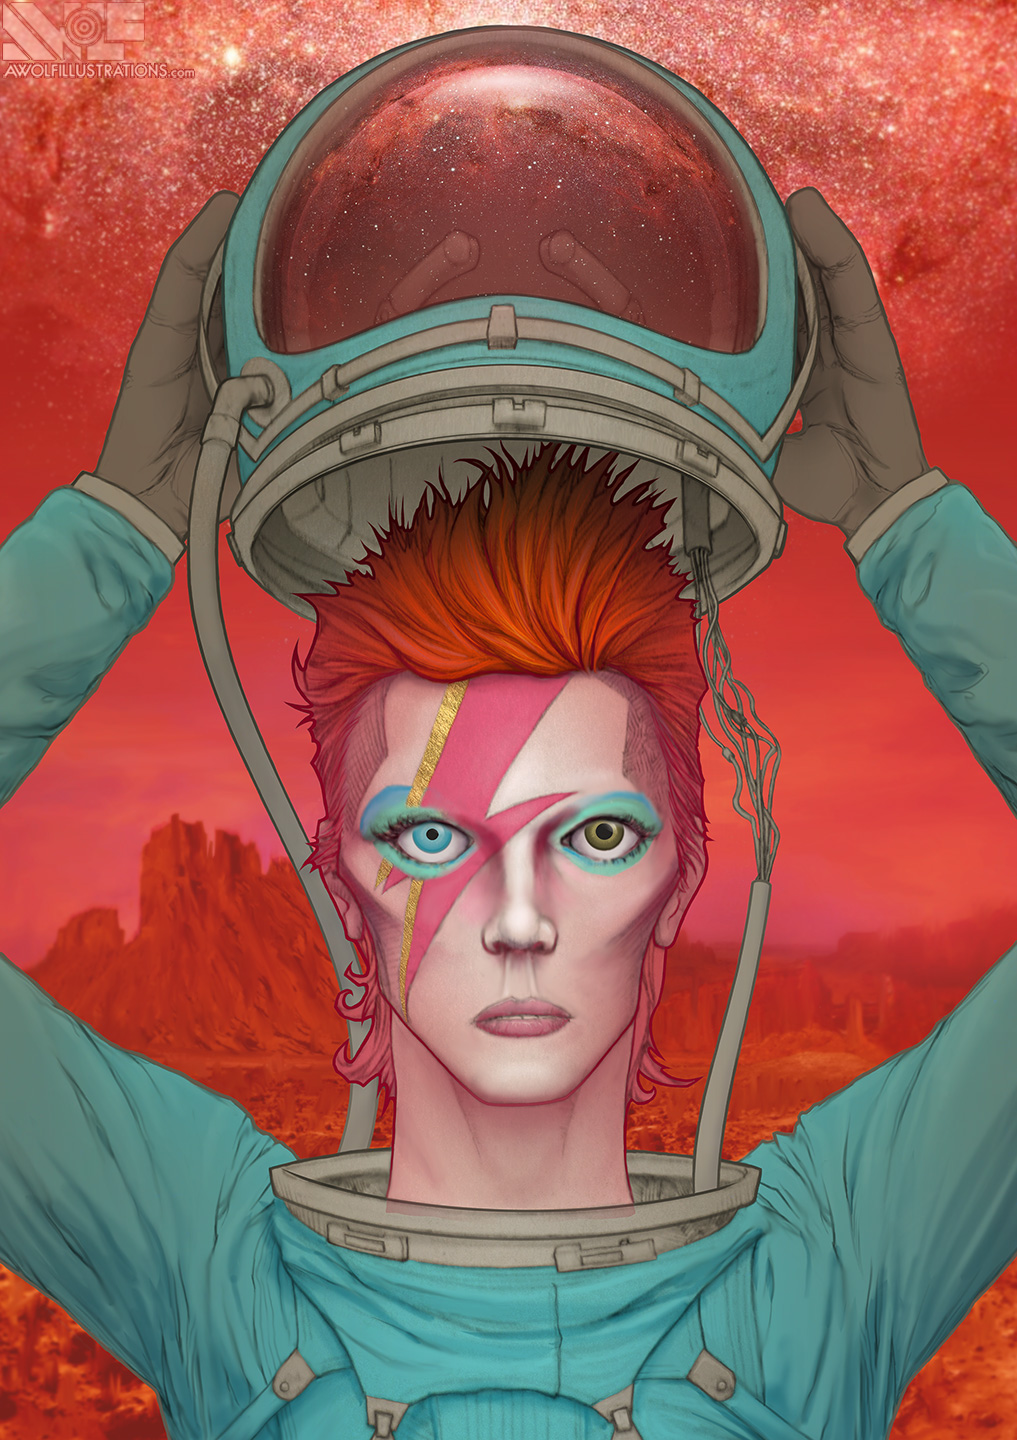 Created around the time David Bowie died this depicts him as an astronaut upon the surface of the red planet Mars